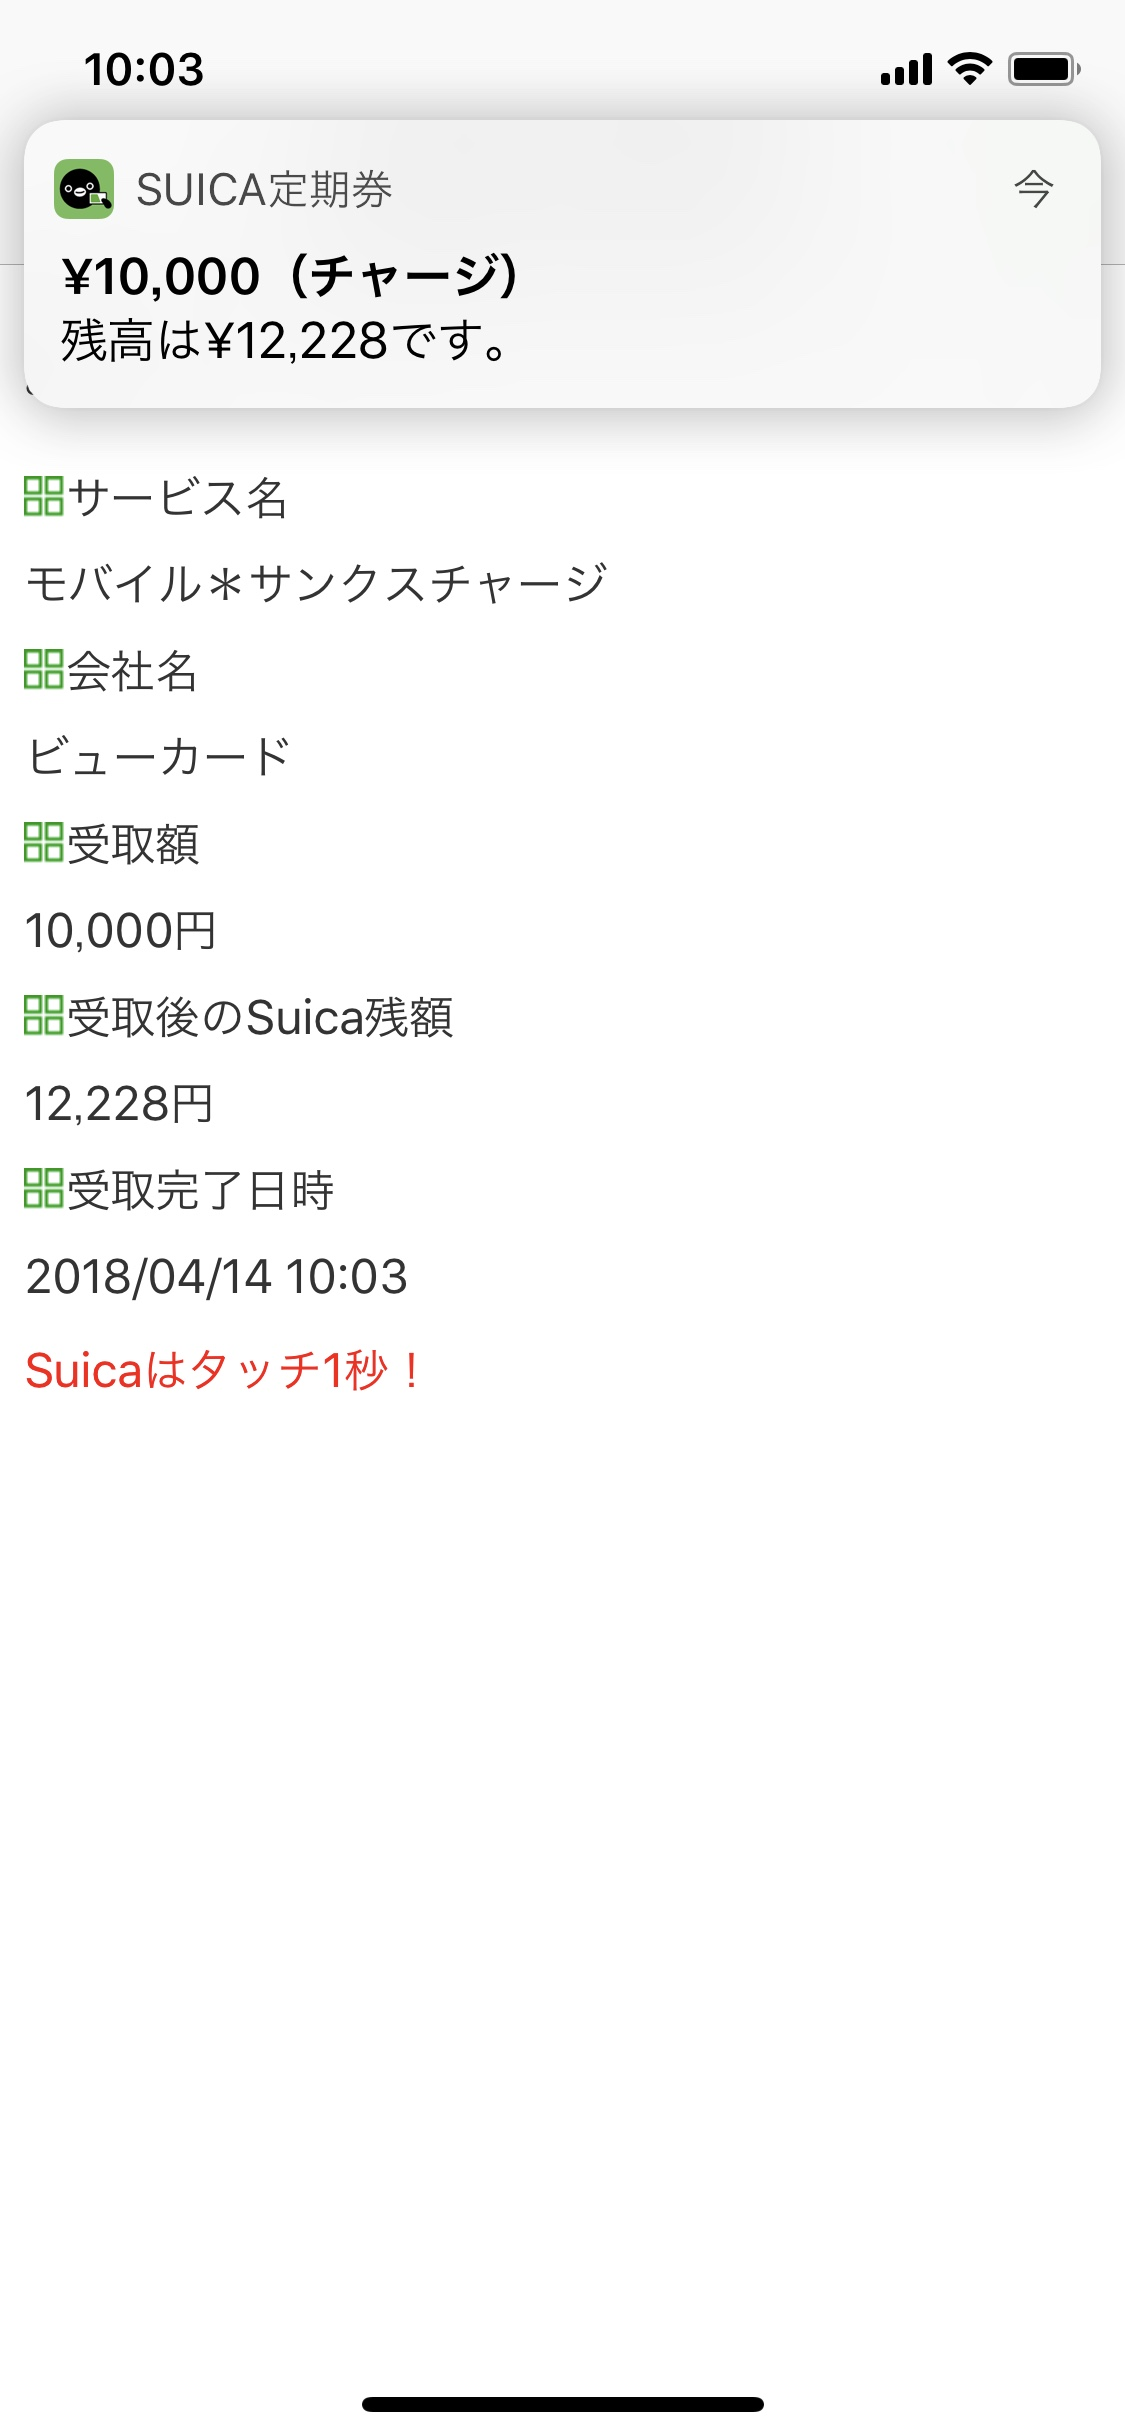 Apple Pay Notification of your Suica Recharge